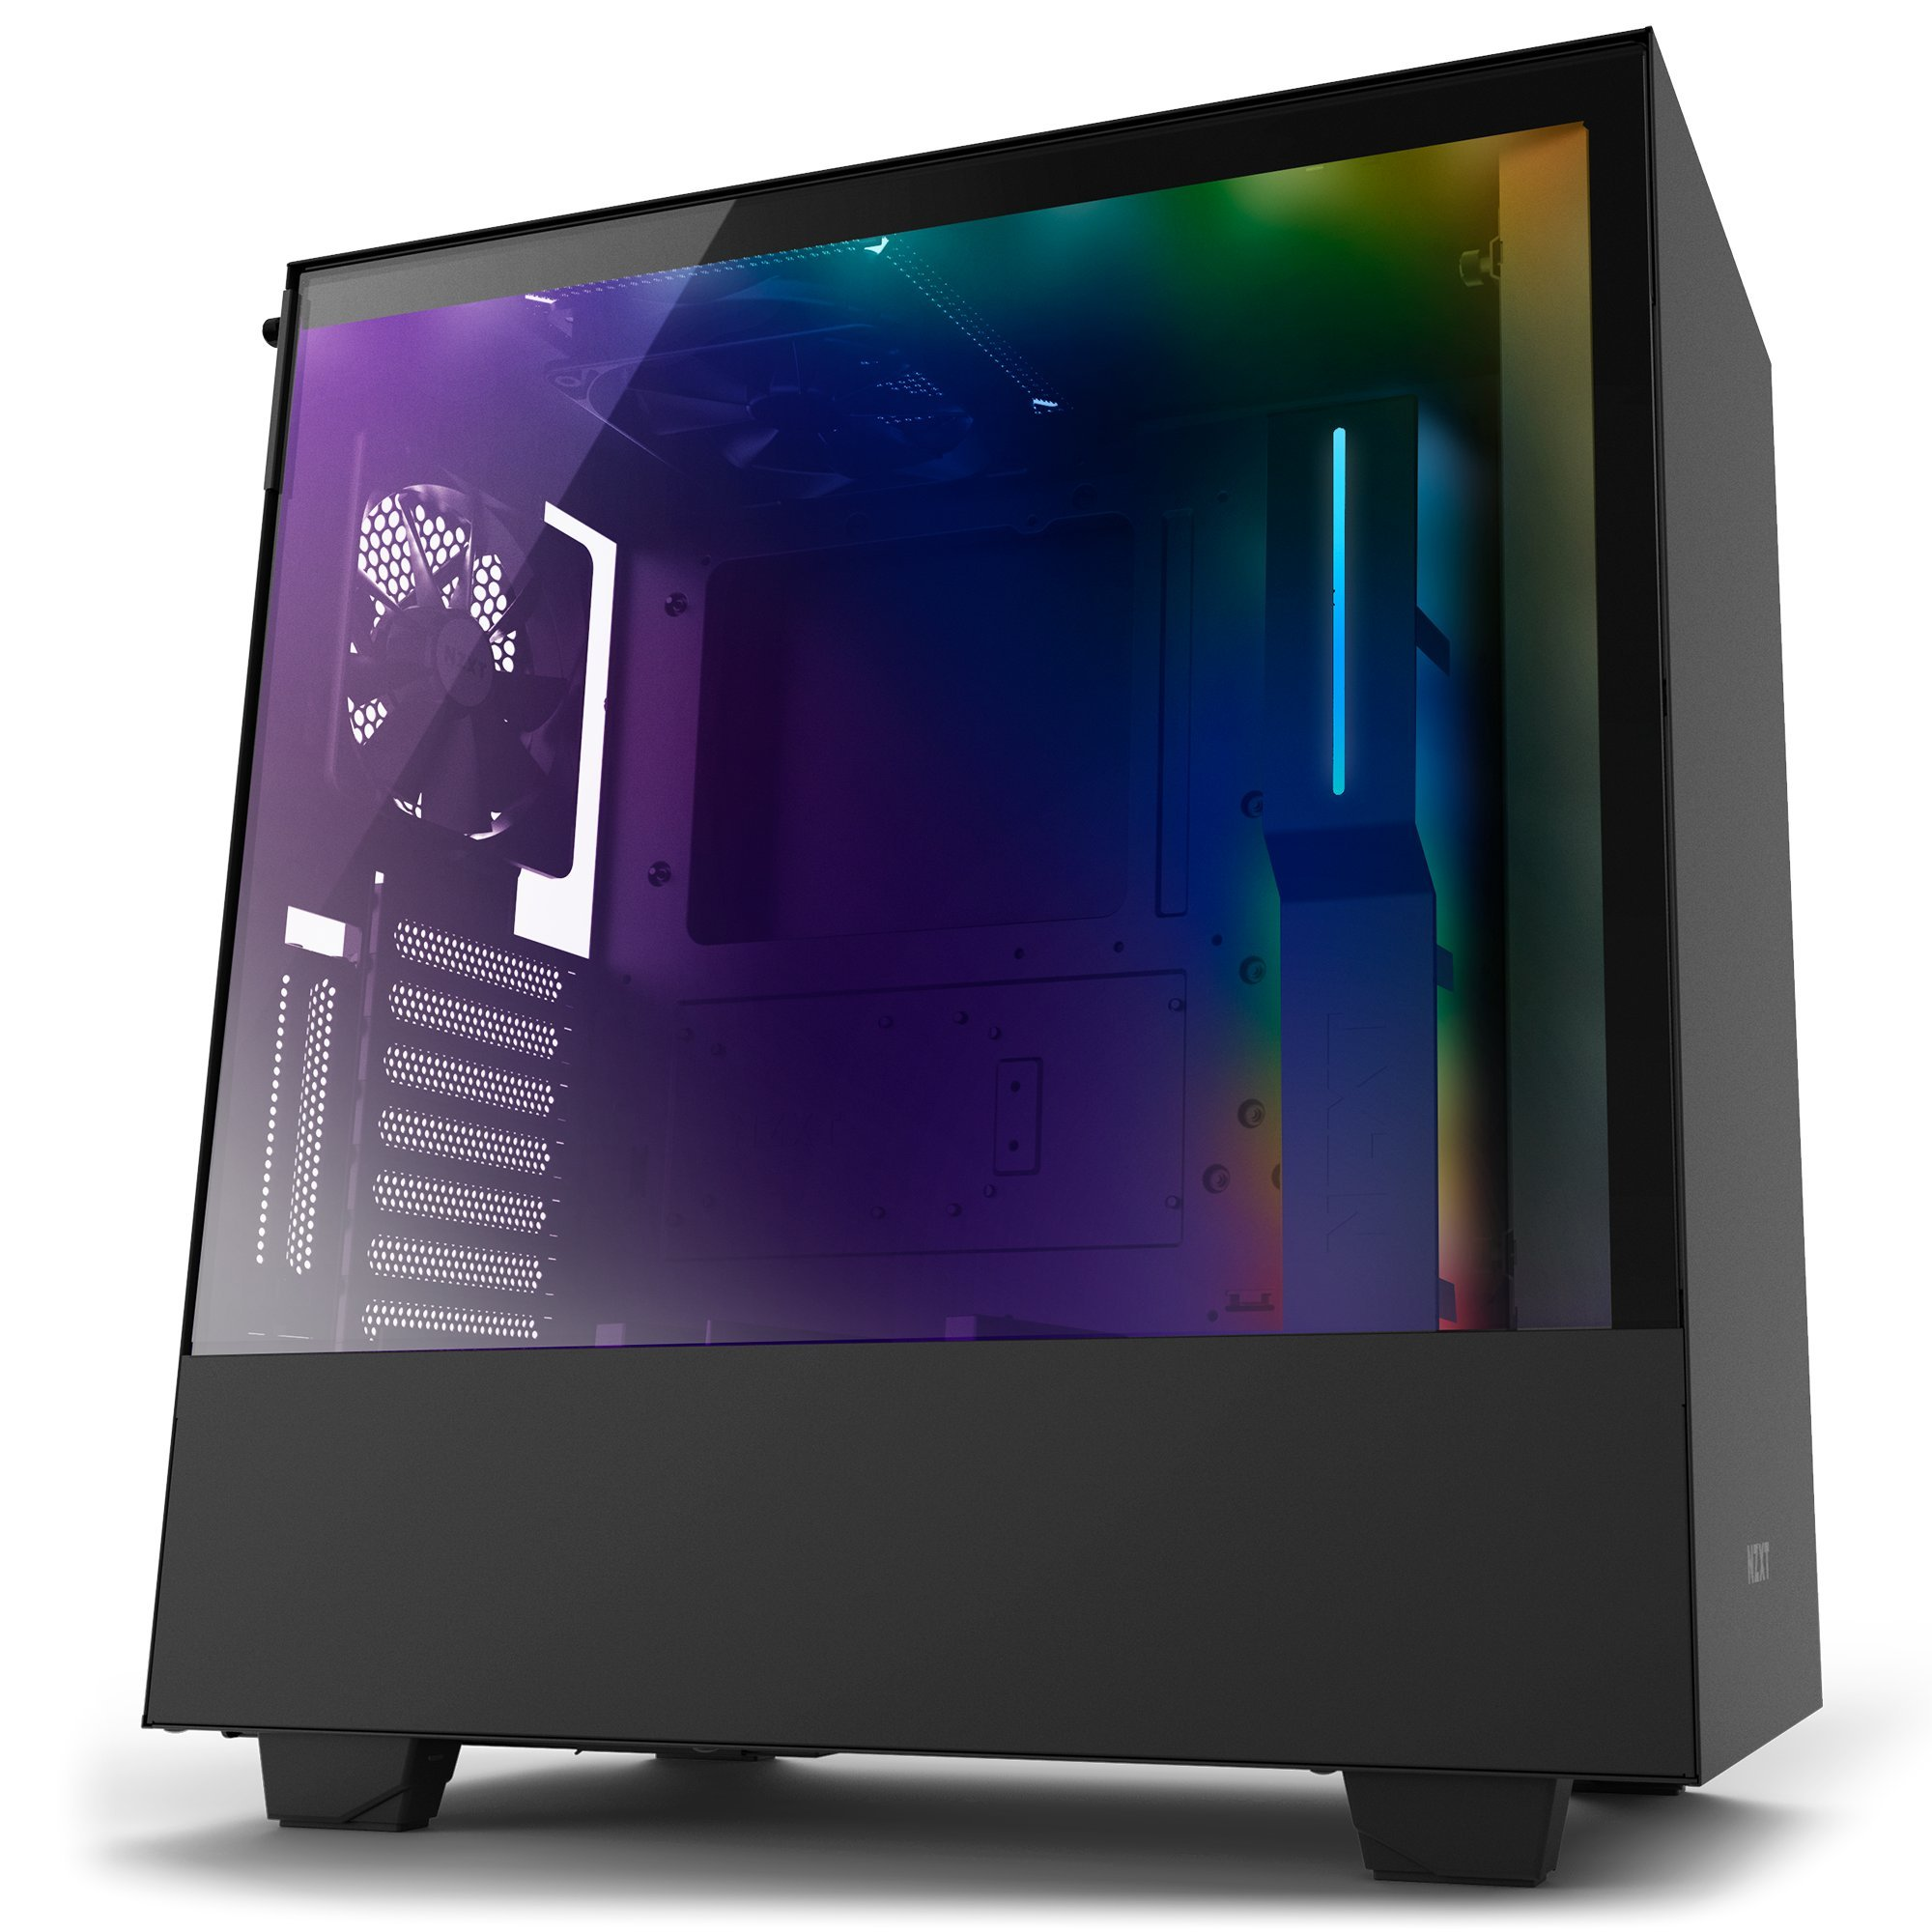 NZXT H500i ATX Computer Case, with Digital Fan Control and RGB Lighting, Black (CA-H500W-B1)